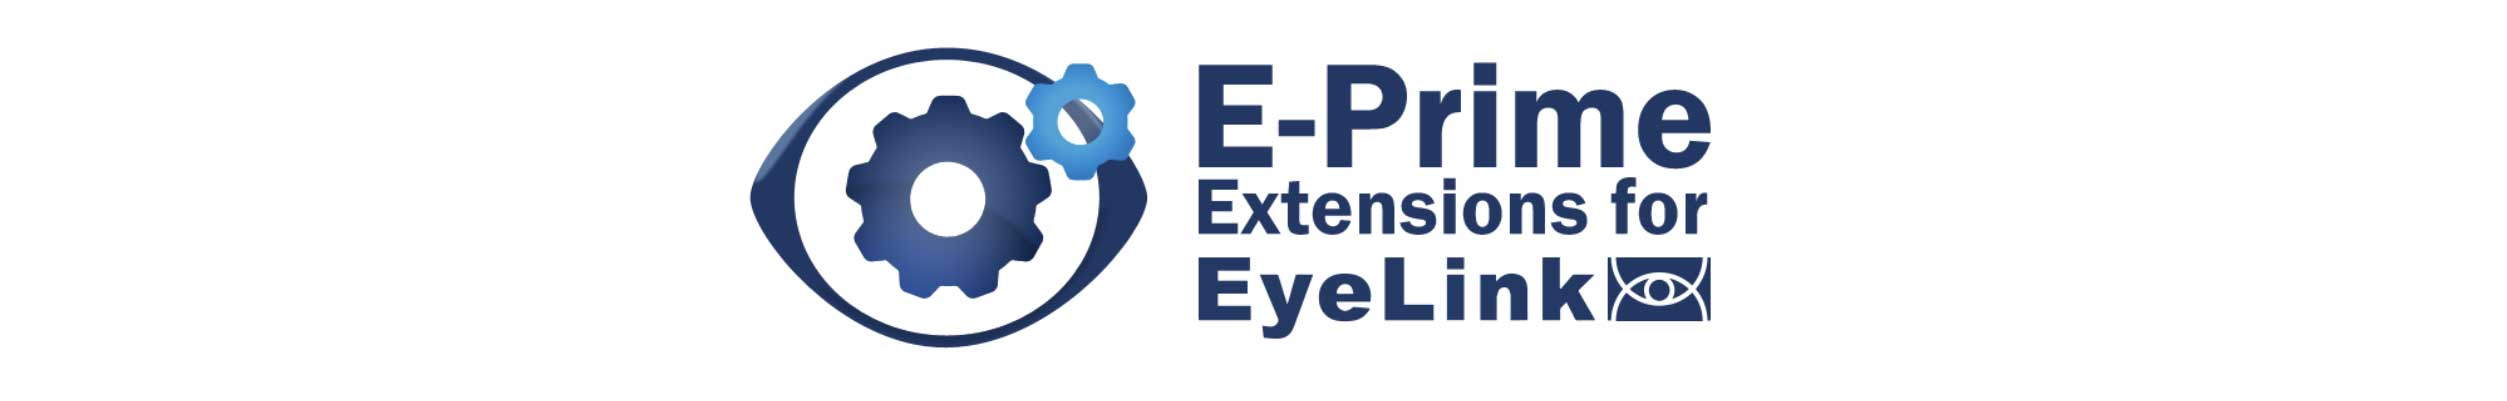 E-Prime Extensions for EyeLink